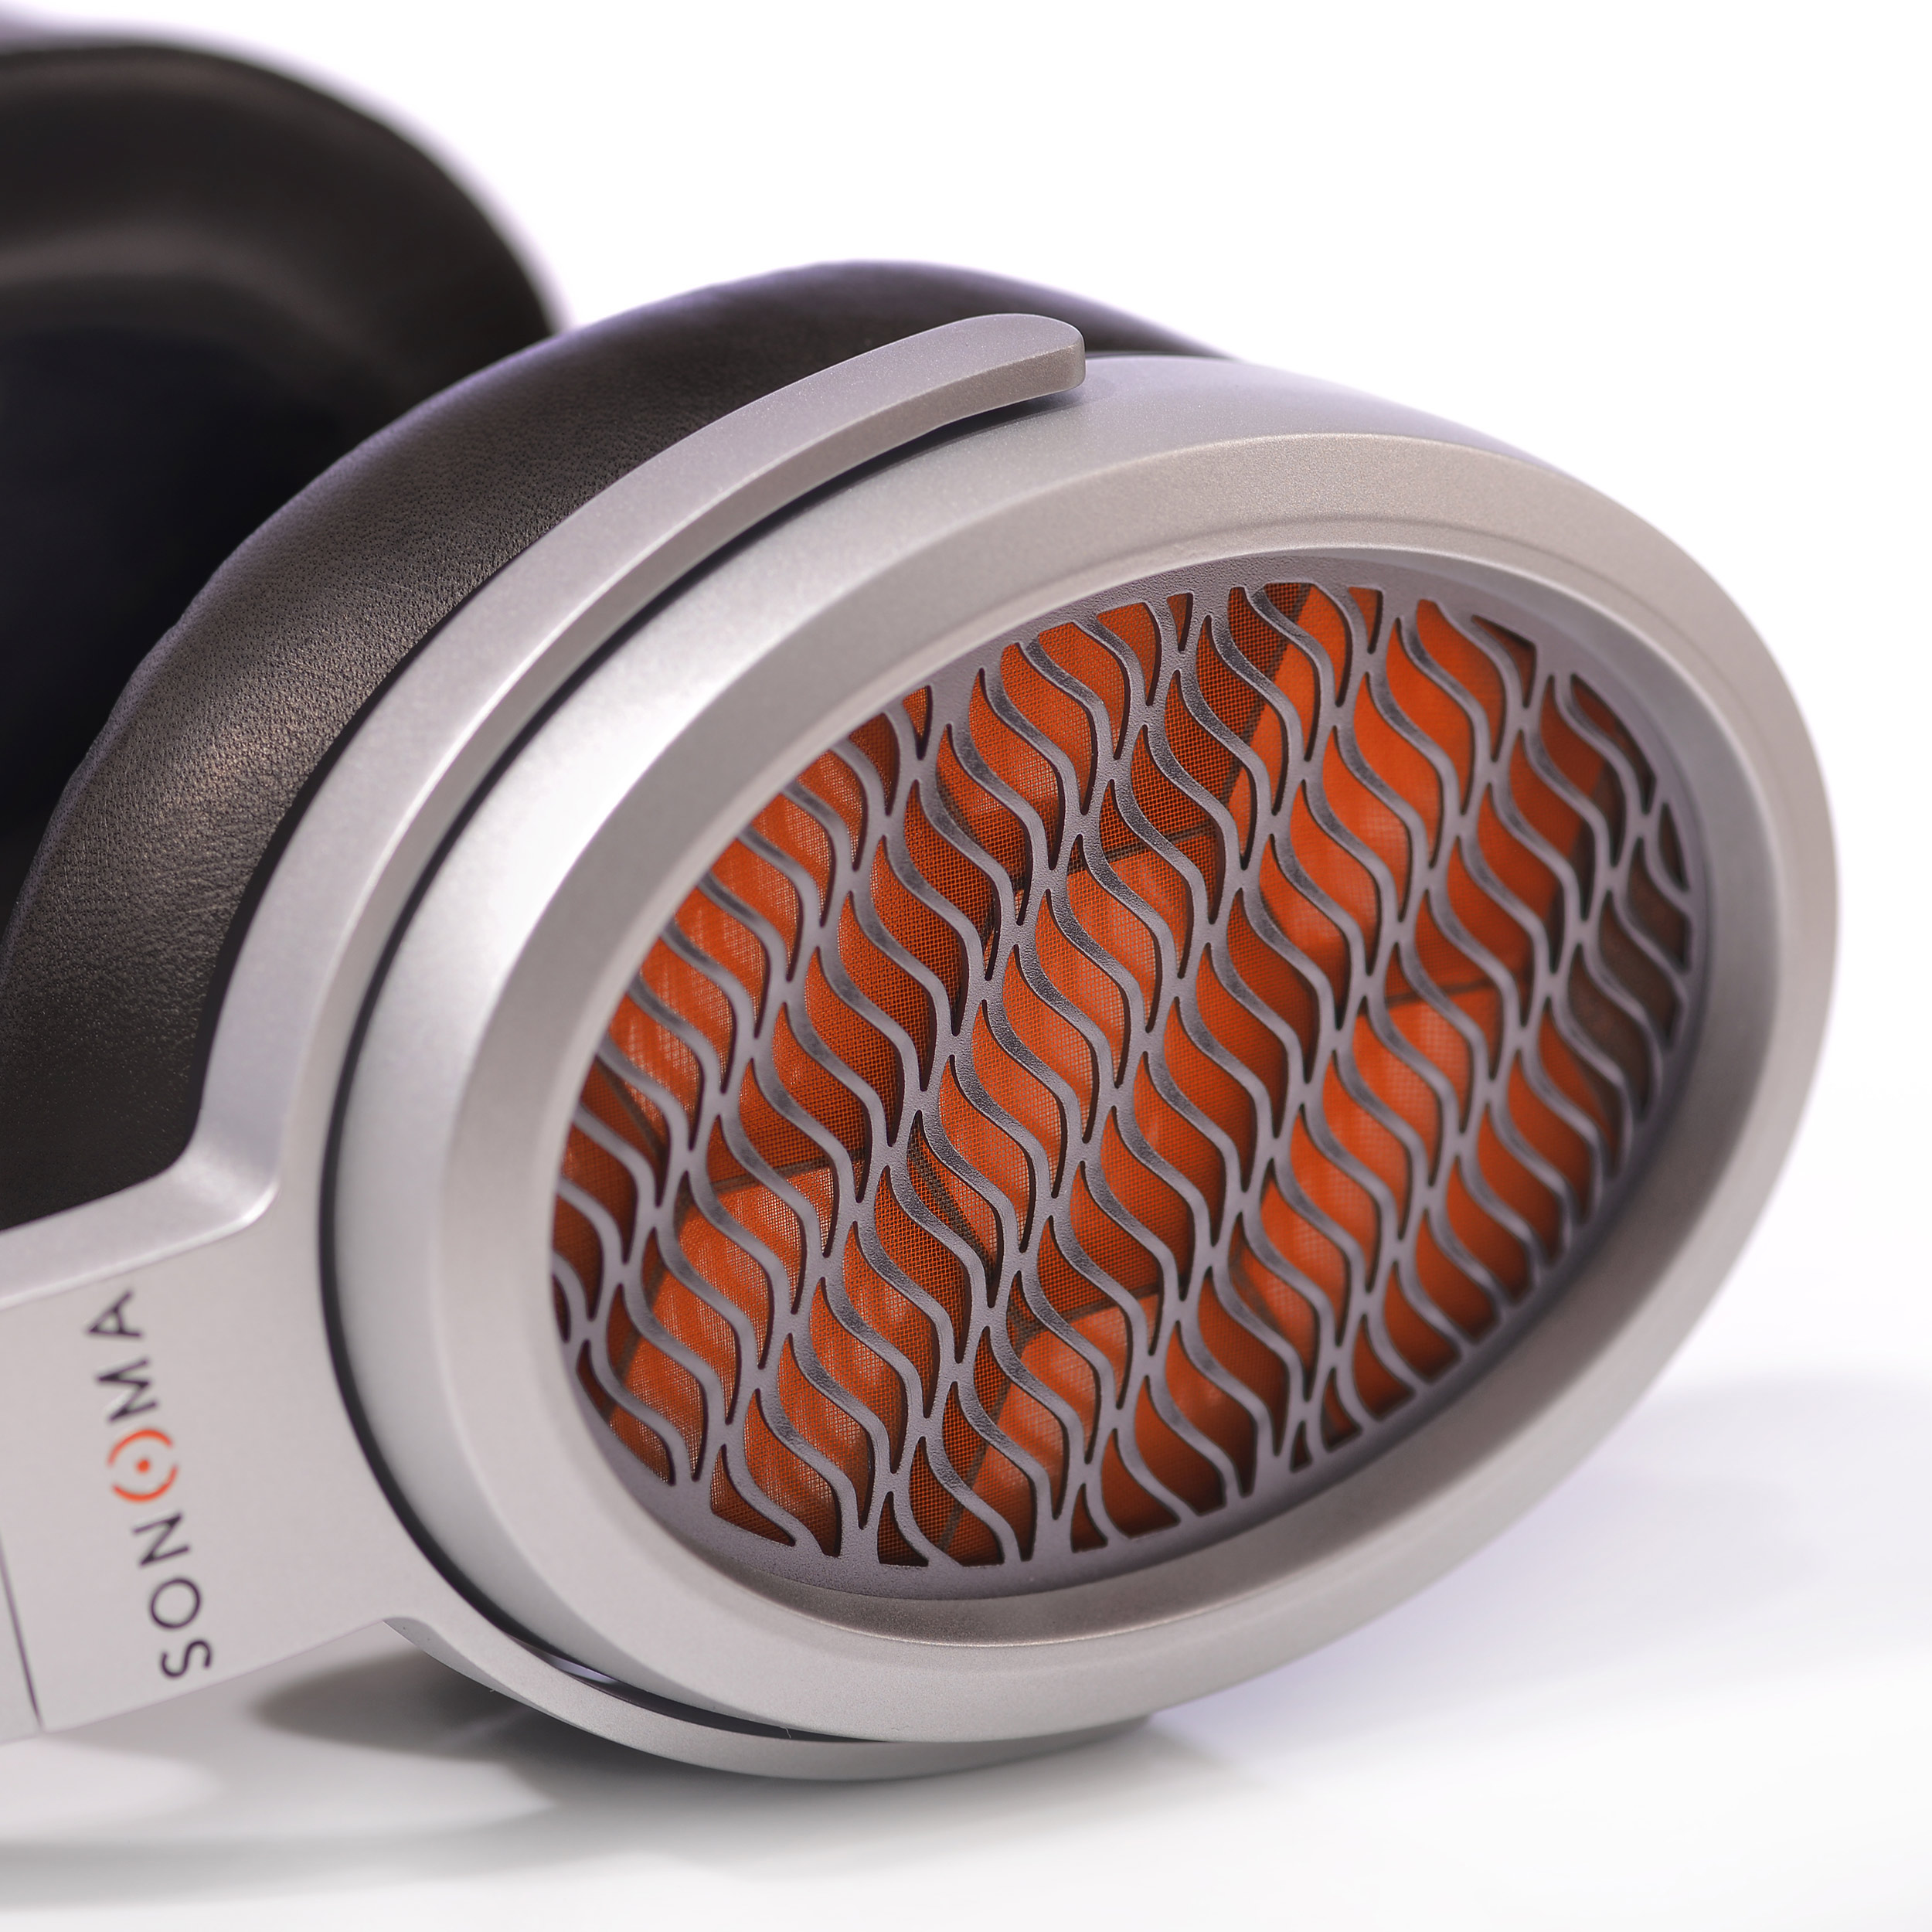 Oval shaped, injected magnesium silver earcups with orange honeycomb HPEL visible through a wavy metal mesh